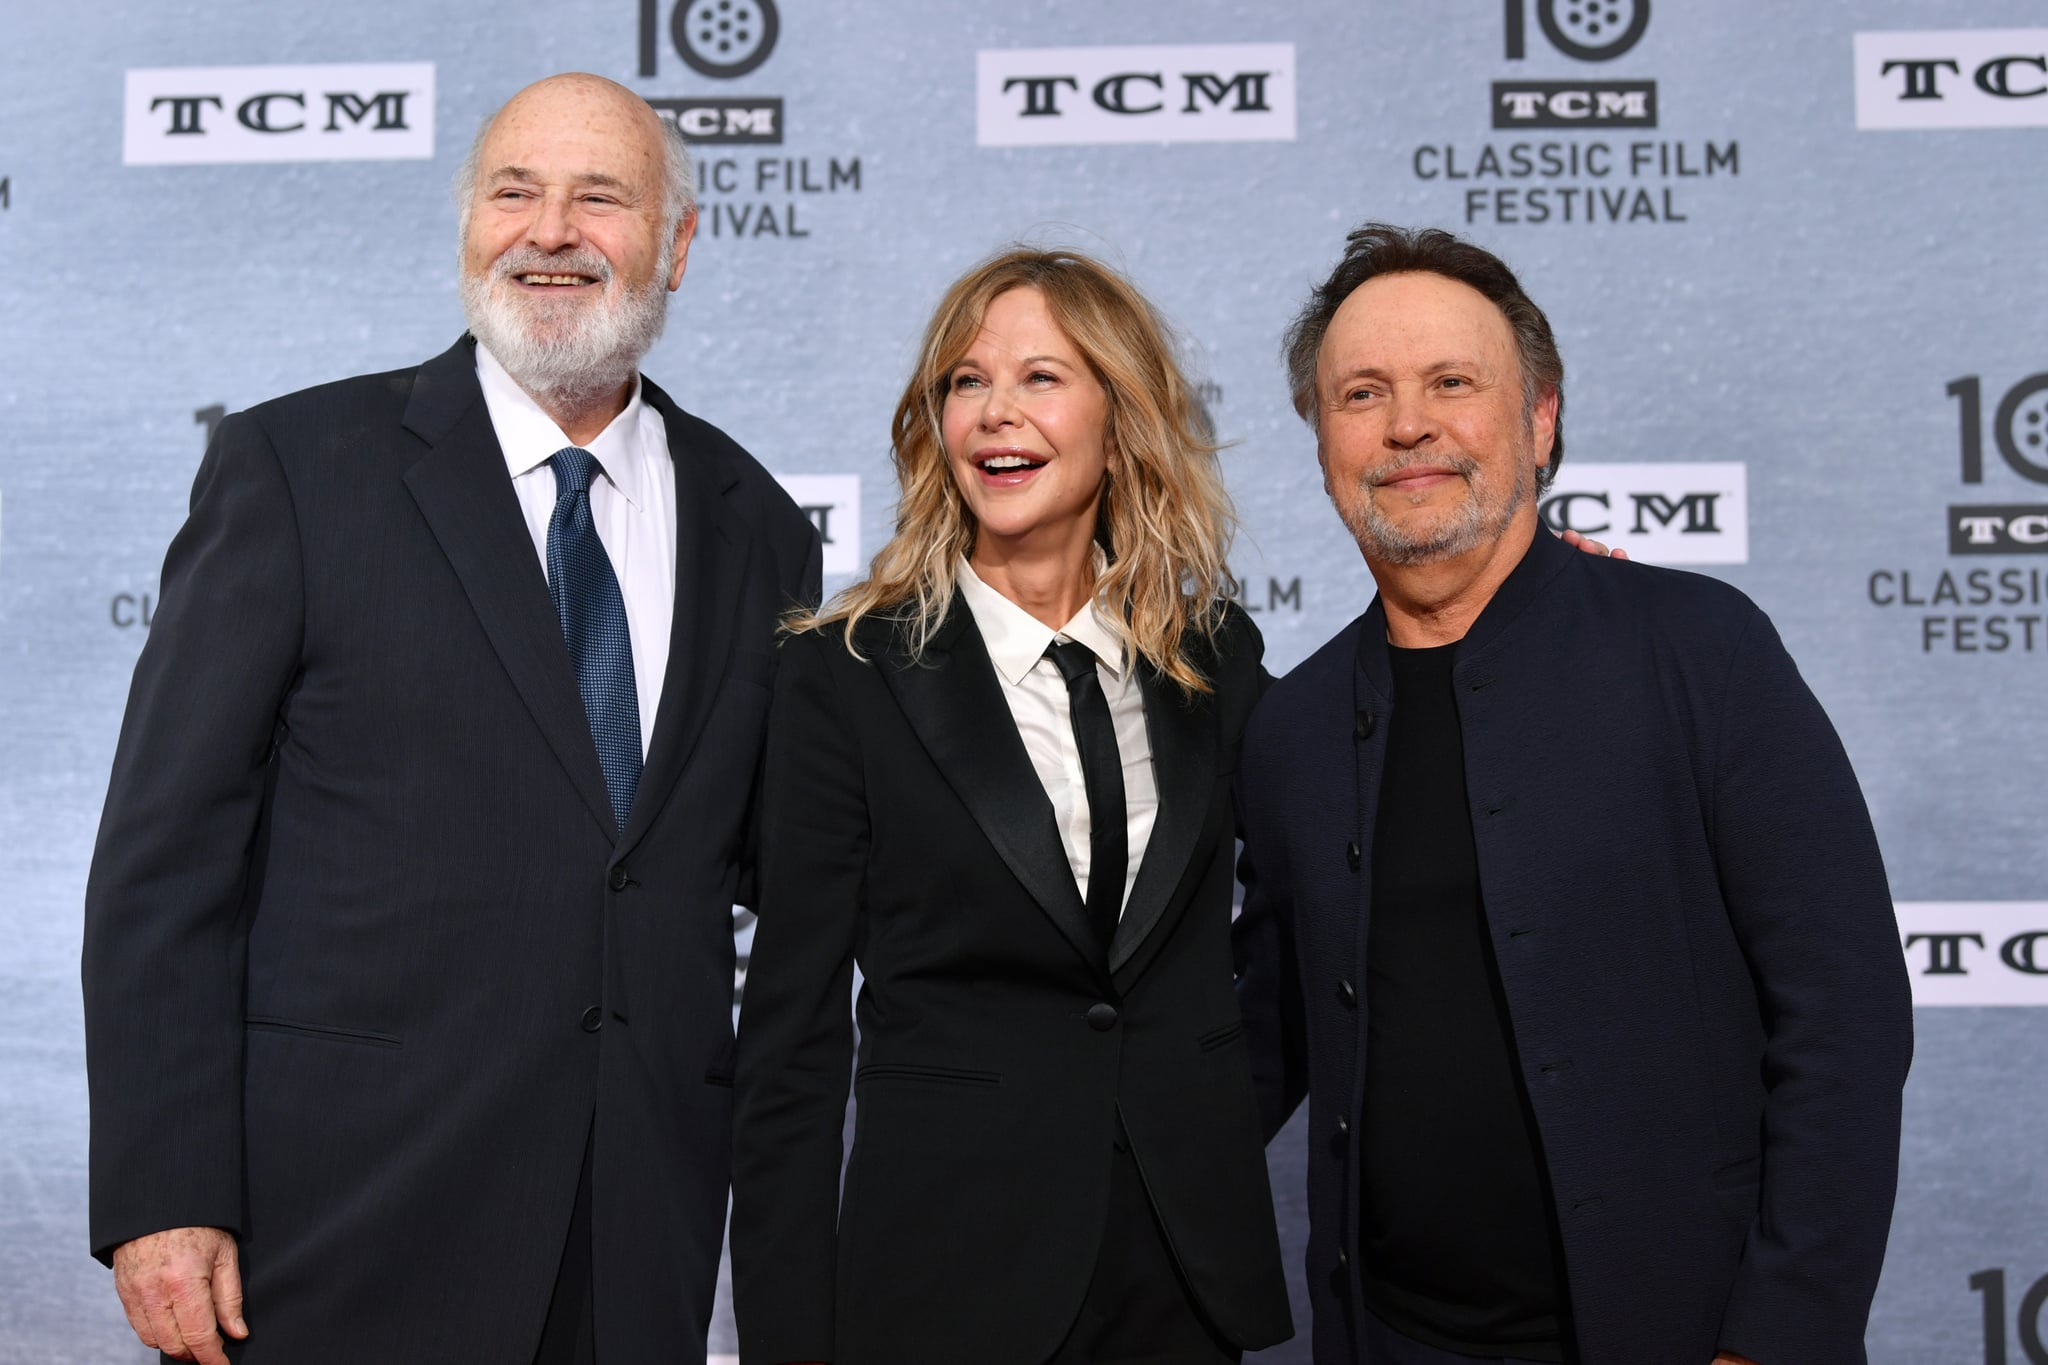 HOLLYWOOD, CA - APRIL 11:  (L-R) Special Guests Rob Reiner, Meg Ryan, and Billy Crystal attend The 30th Anniversary Screening of